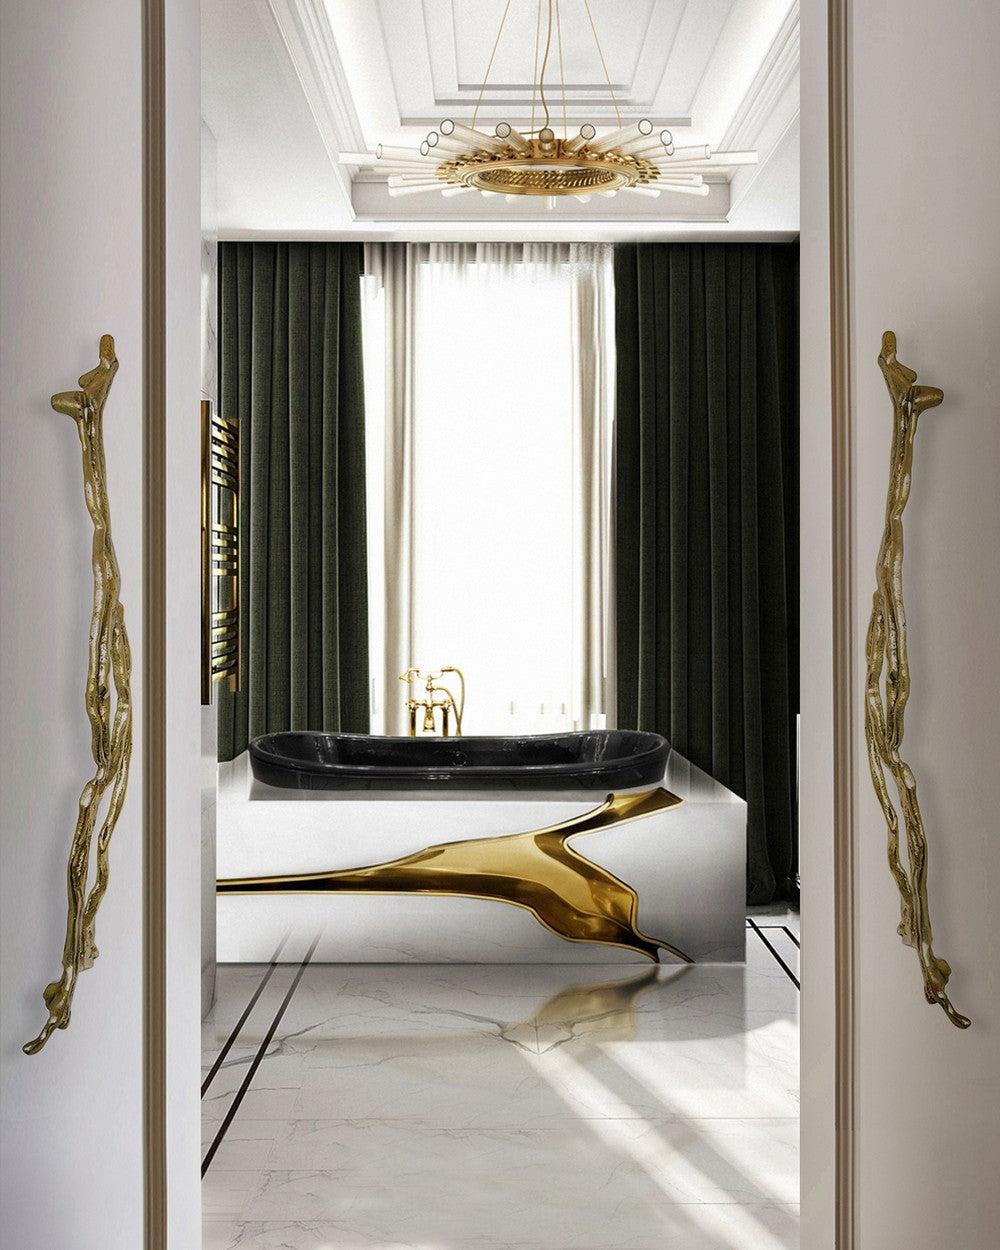 Bathroom Ideas: How to Give A Riveting Yet Timeless Vibe to Your Decor